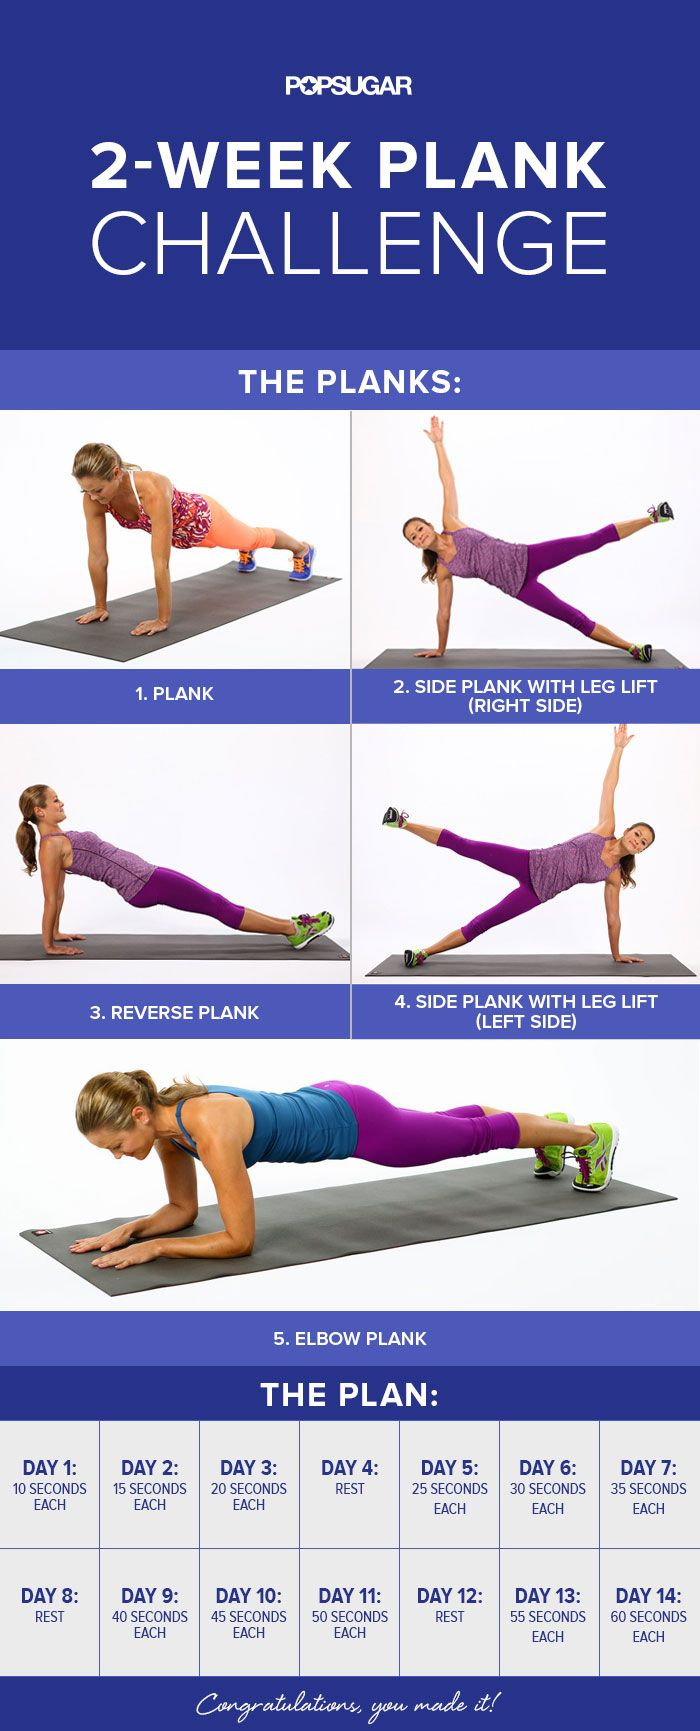 It only takes two weeks with this plank challenge to get stronger arms and flat abs.